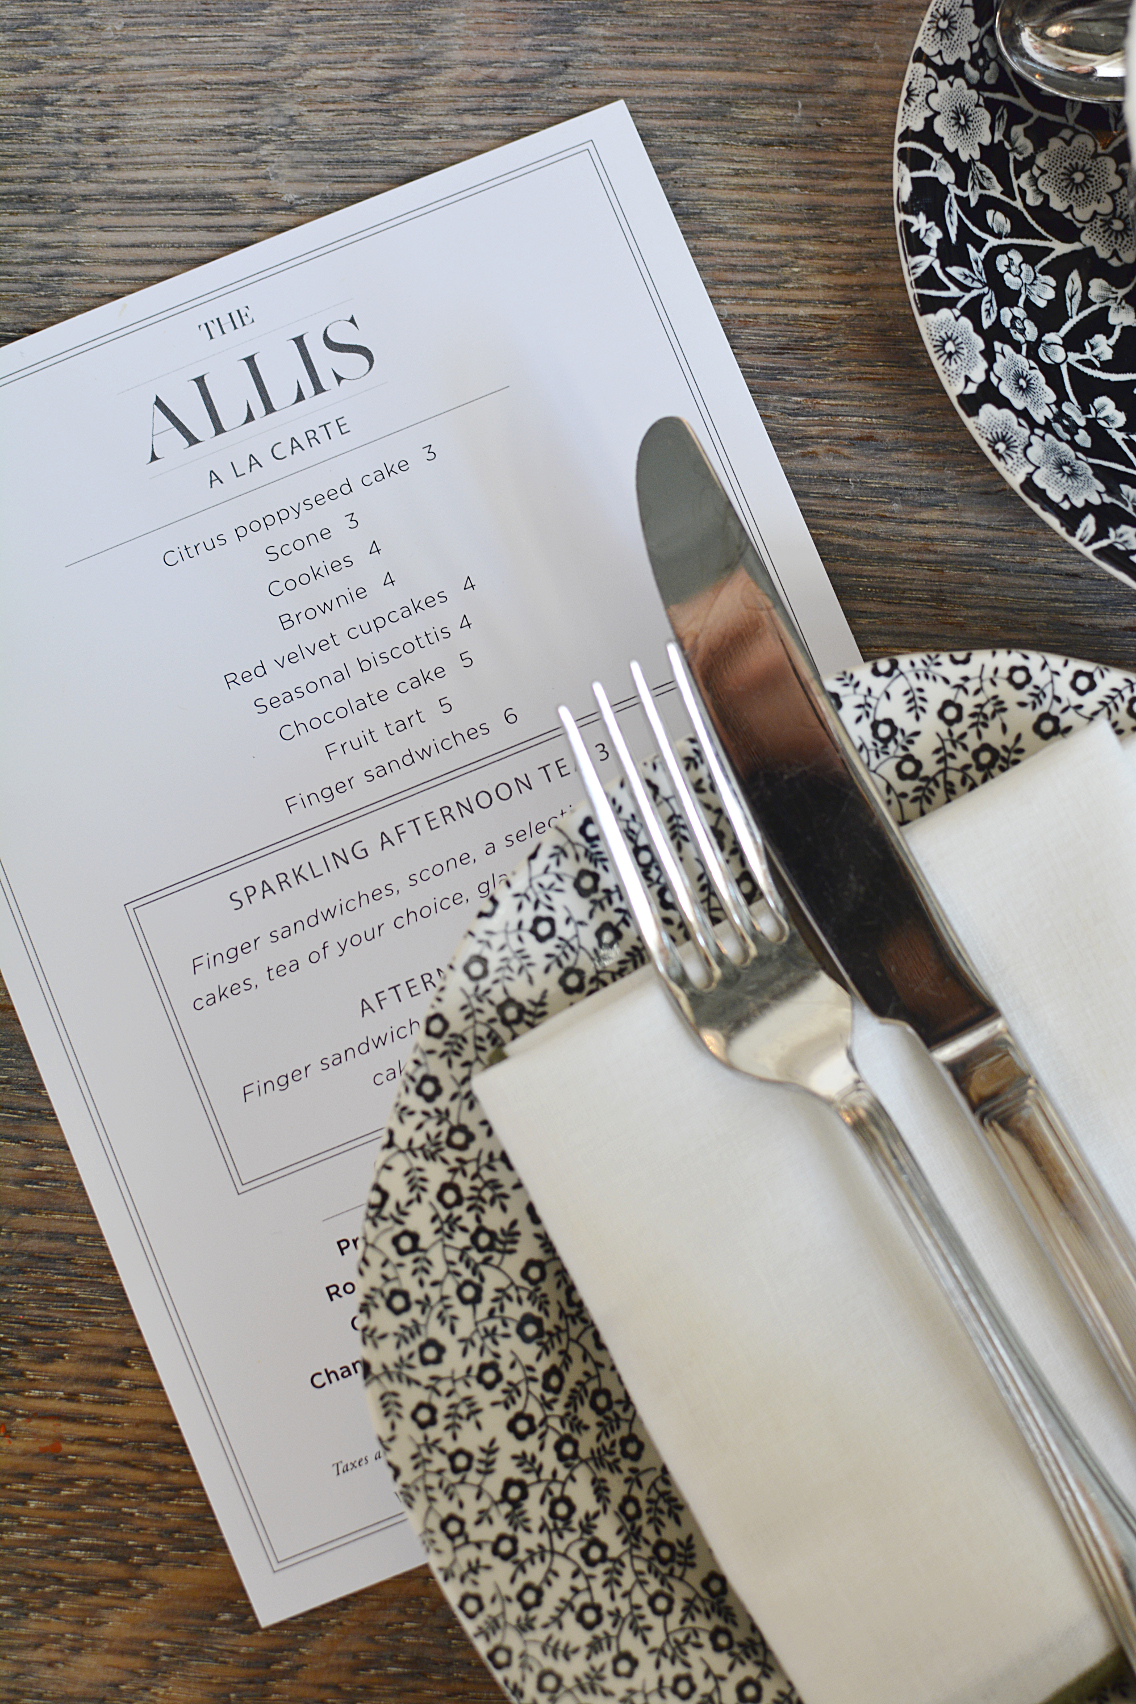 Afternoon Tea at The Allis Soho House 3